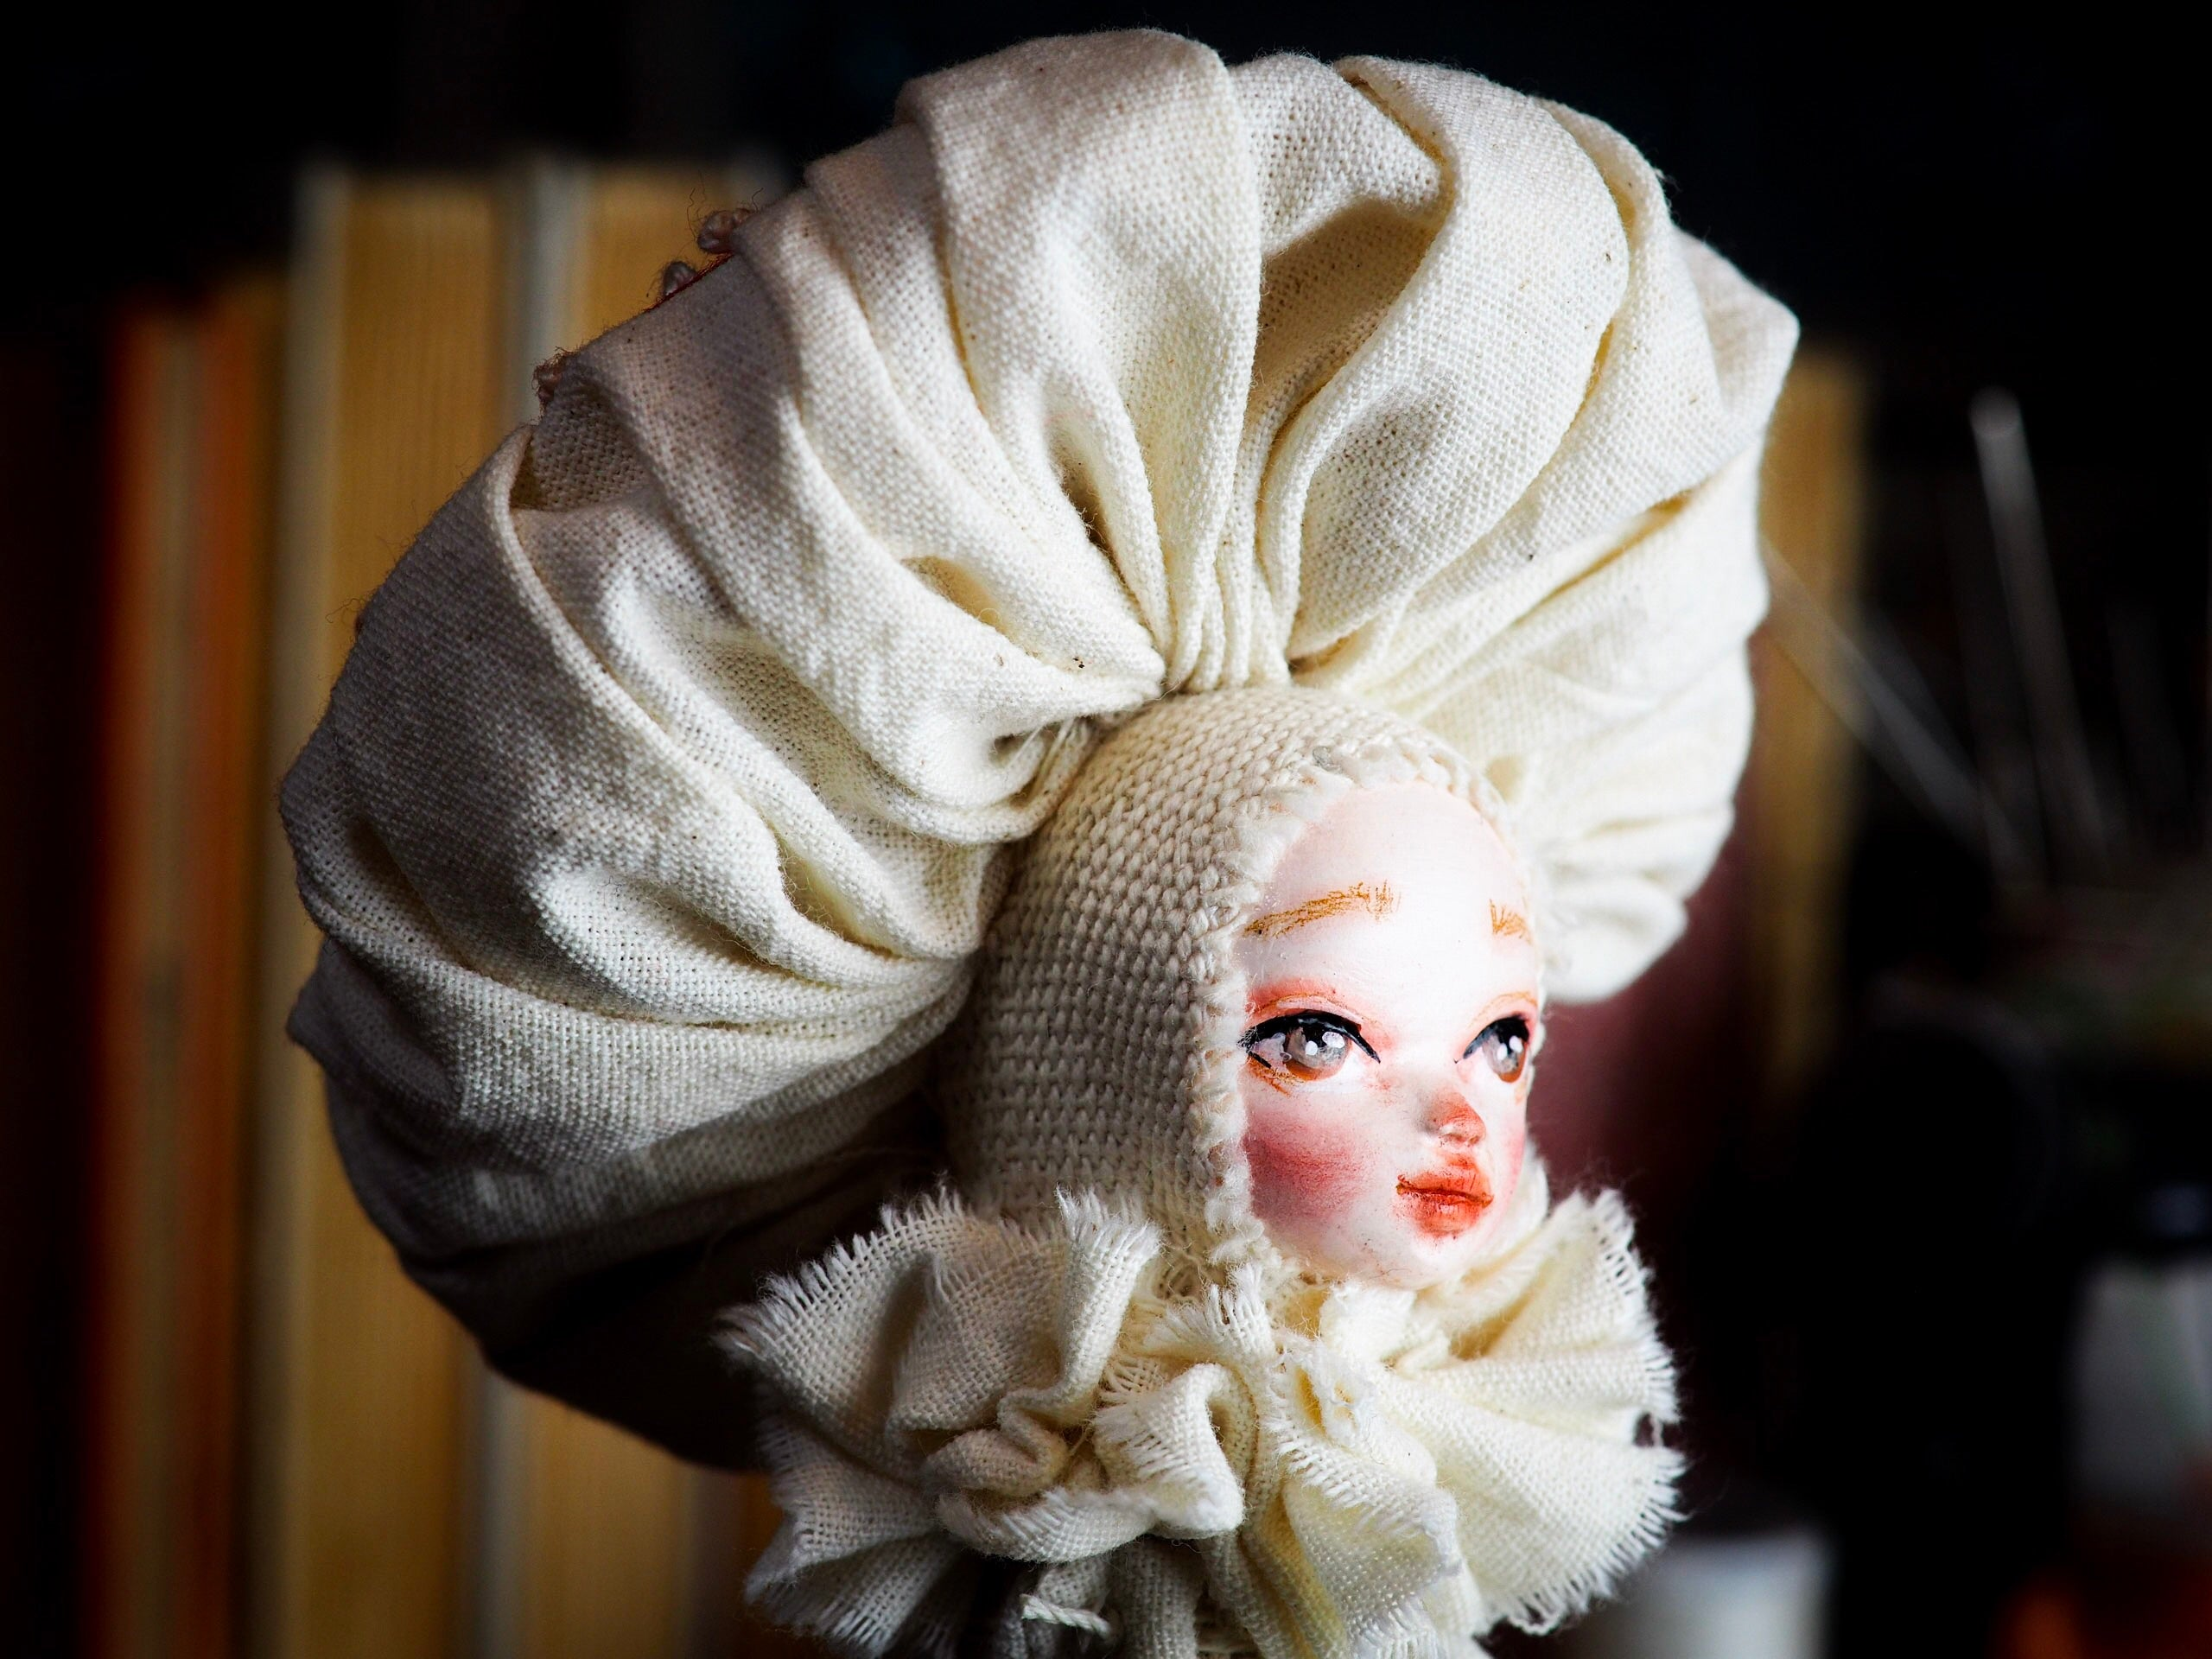 MUSHROOM SPECIMEN N. 9, Art Doll by Danita Art